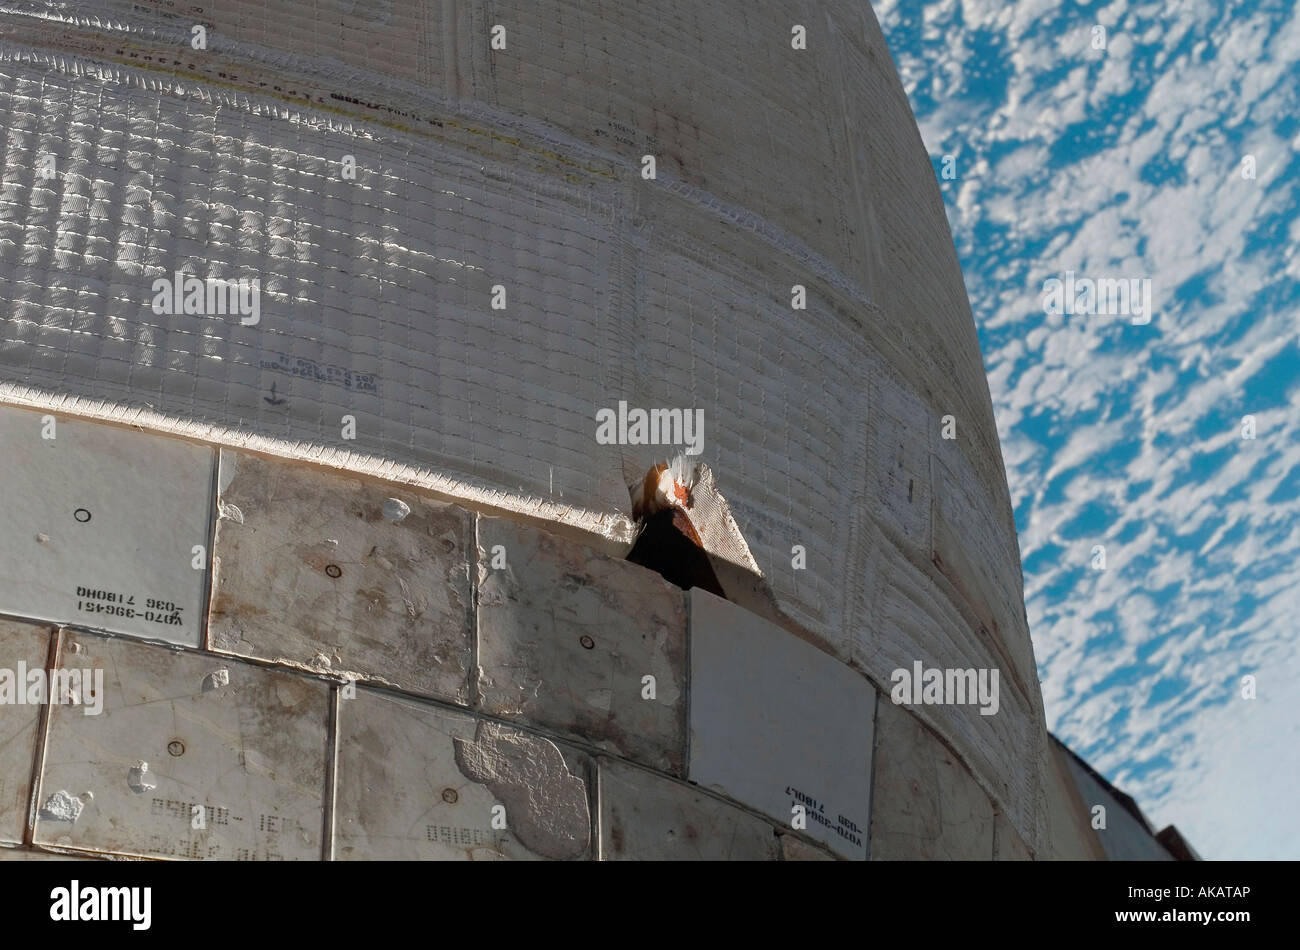 Close-up of Space Shuttle Atlantis. - Stock Image